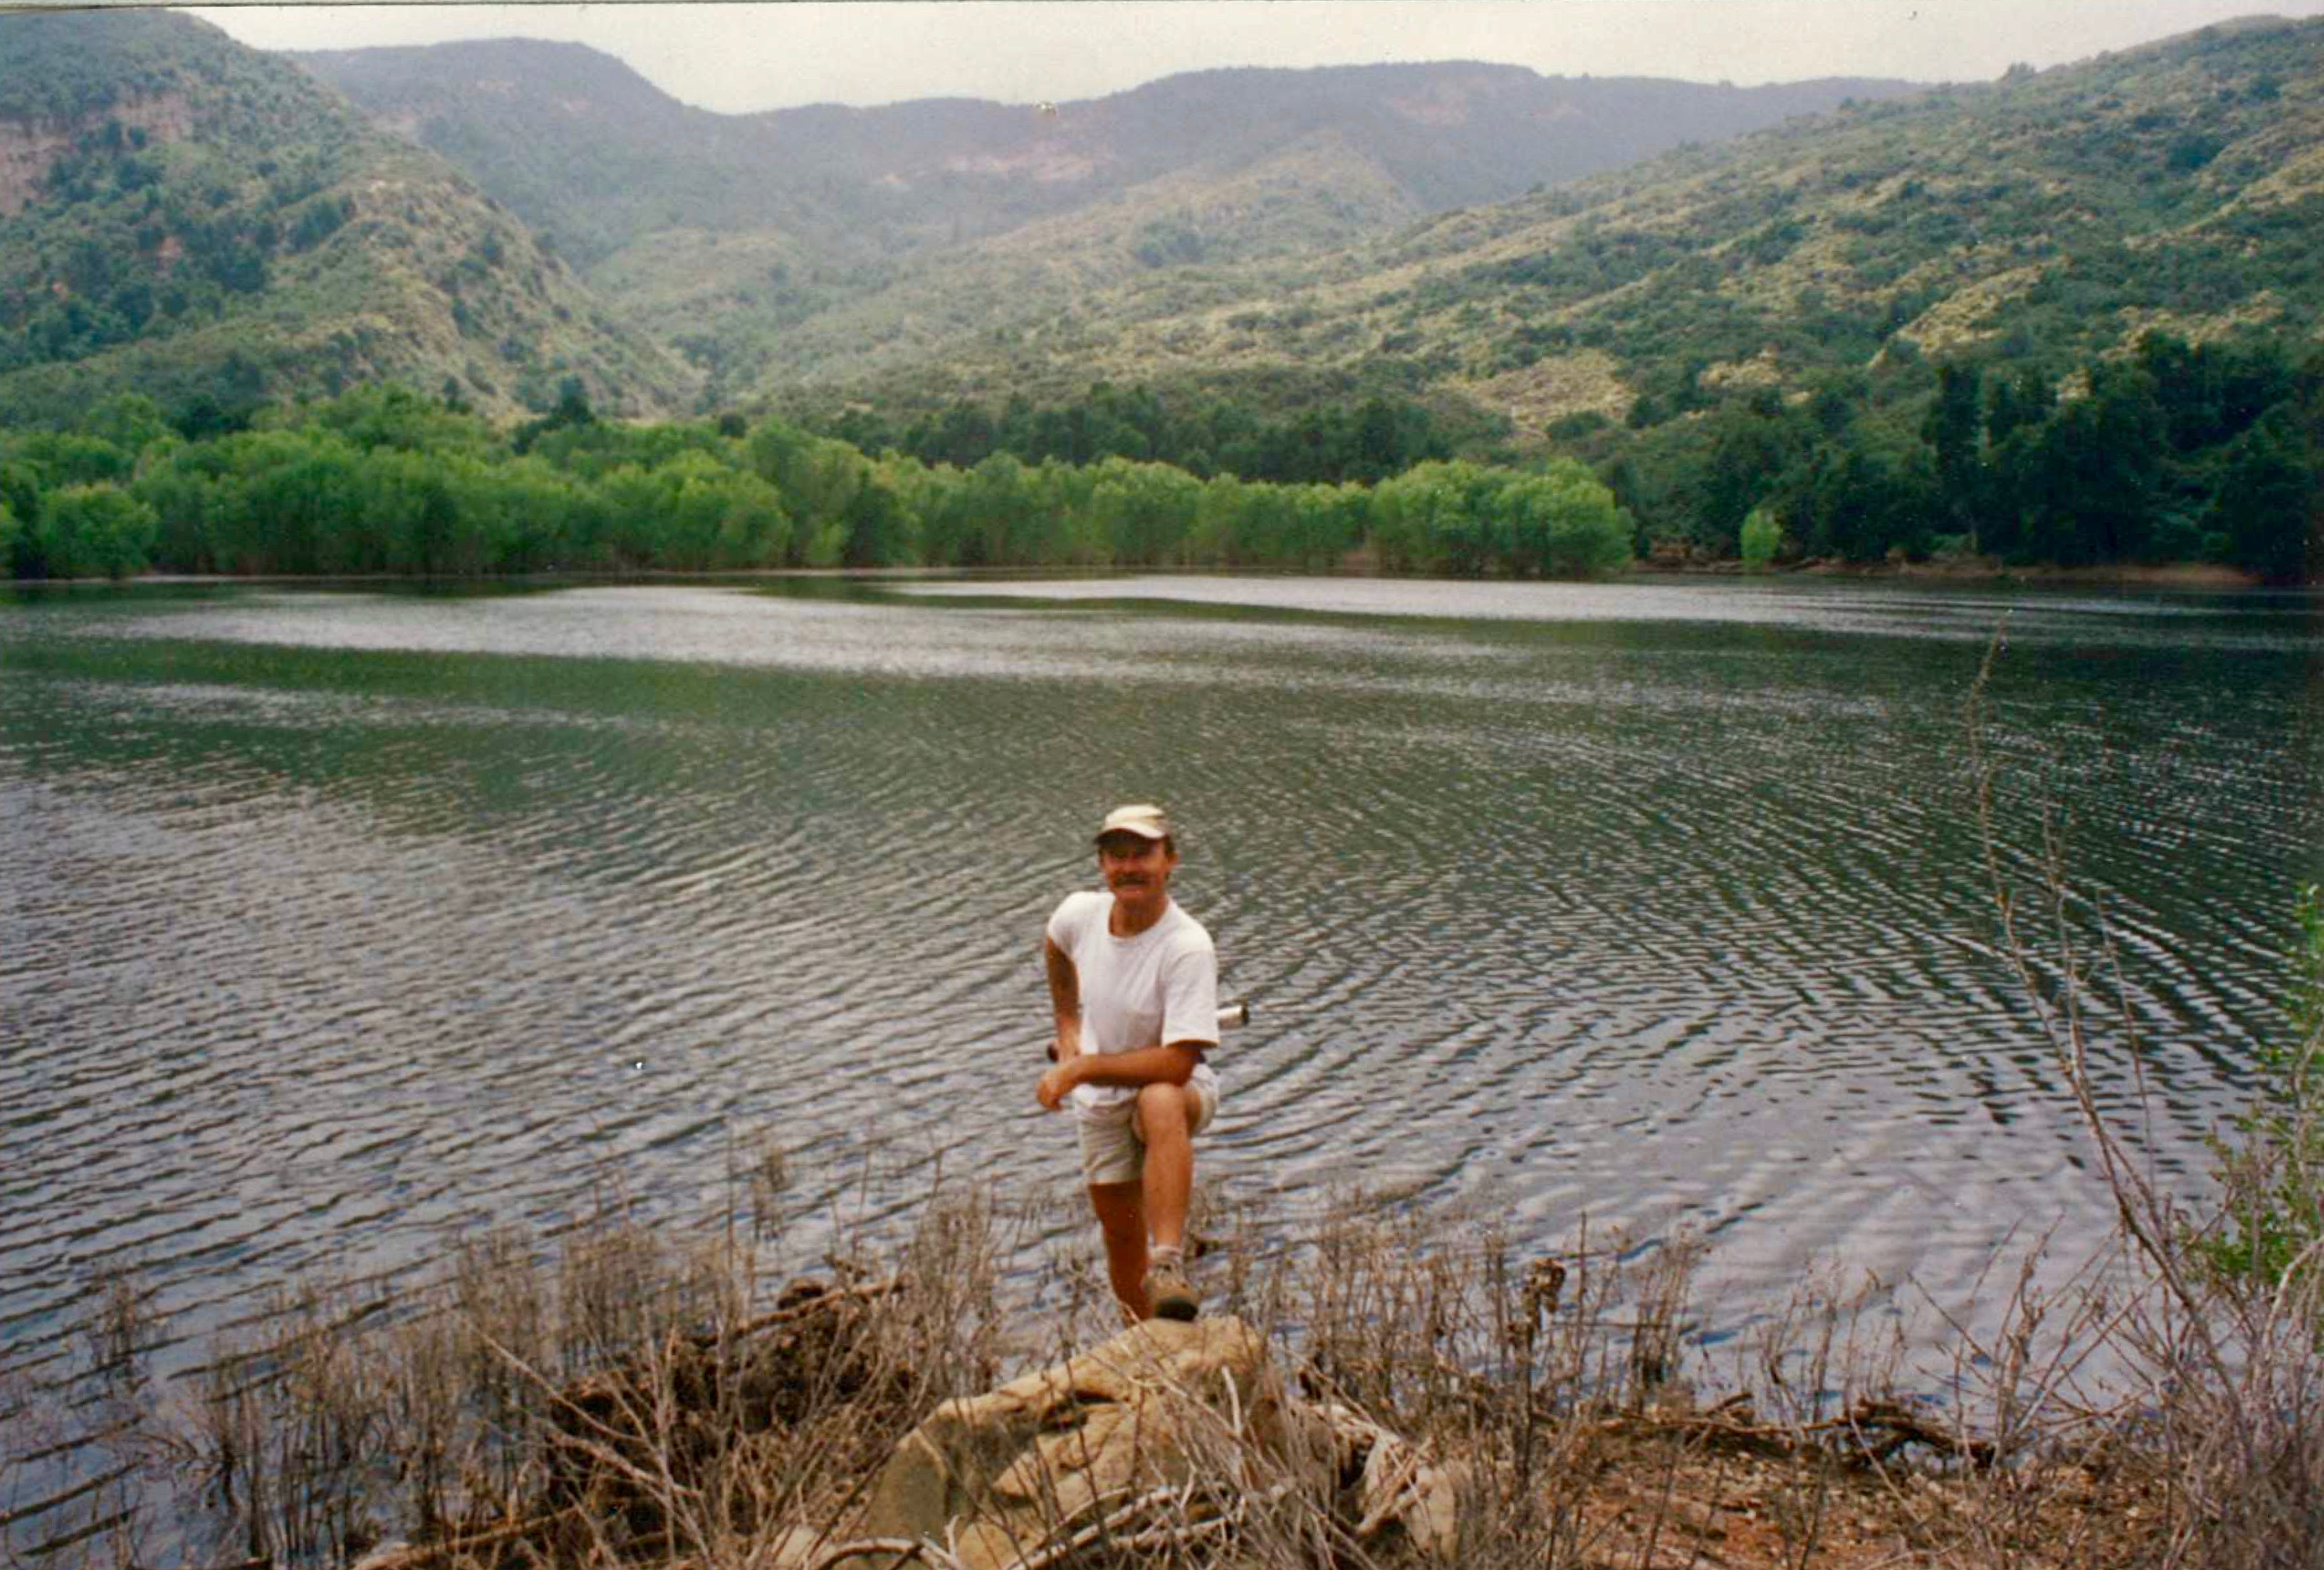 The pothole lake sespe wilderness los padres national forest